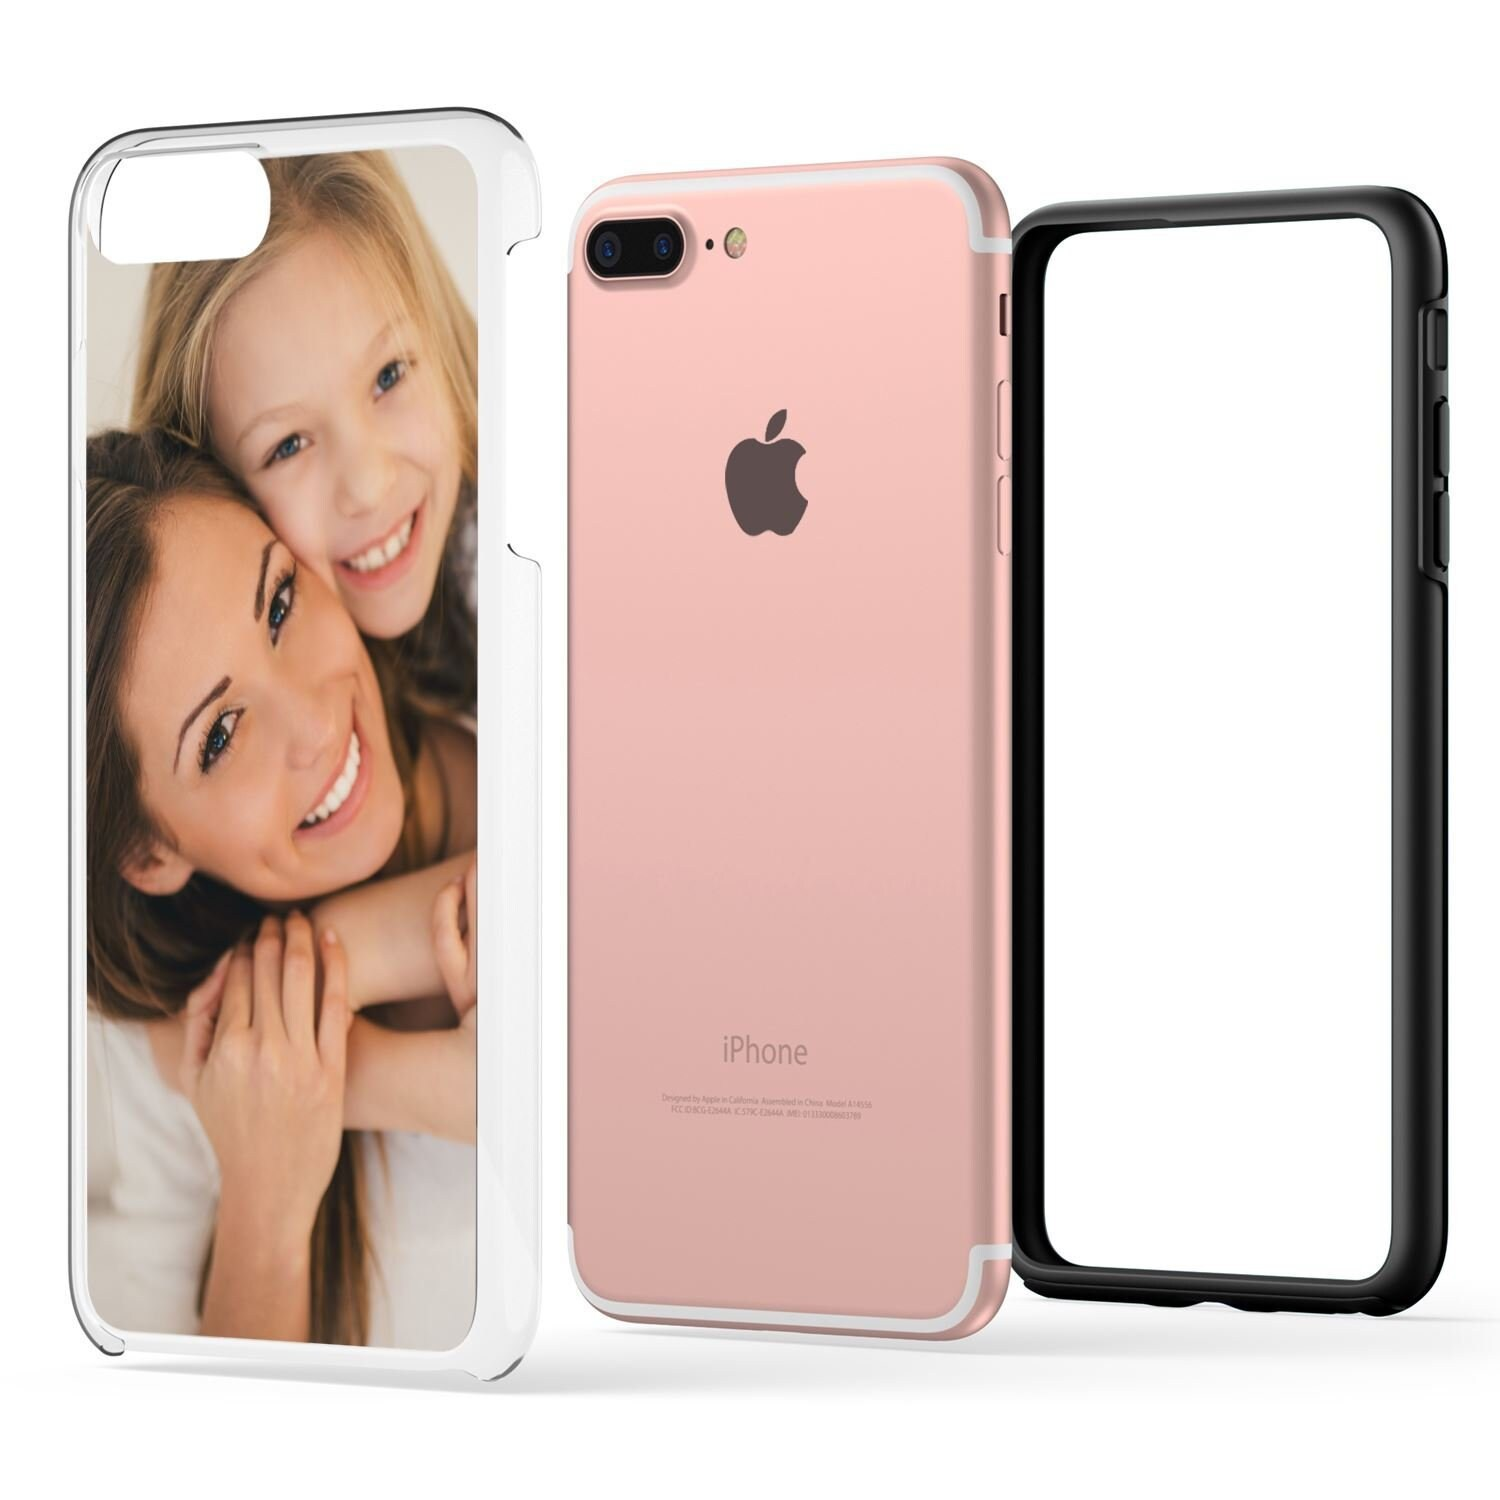 factory price 6044e d0fcb Personalized iPhone 8, 7, Plus Case - Create Your Own Phone Case ...